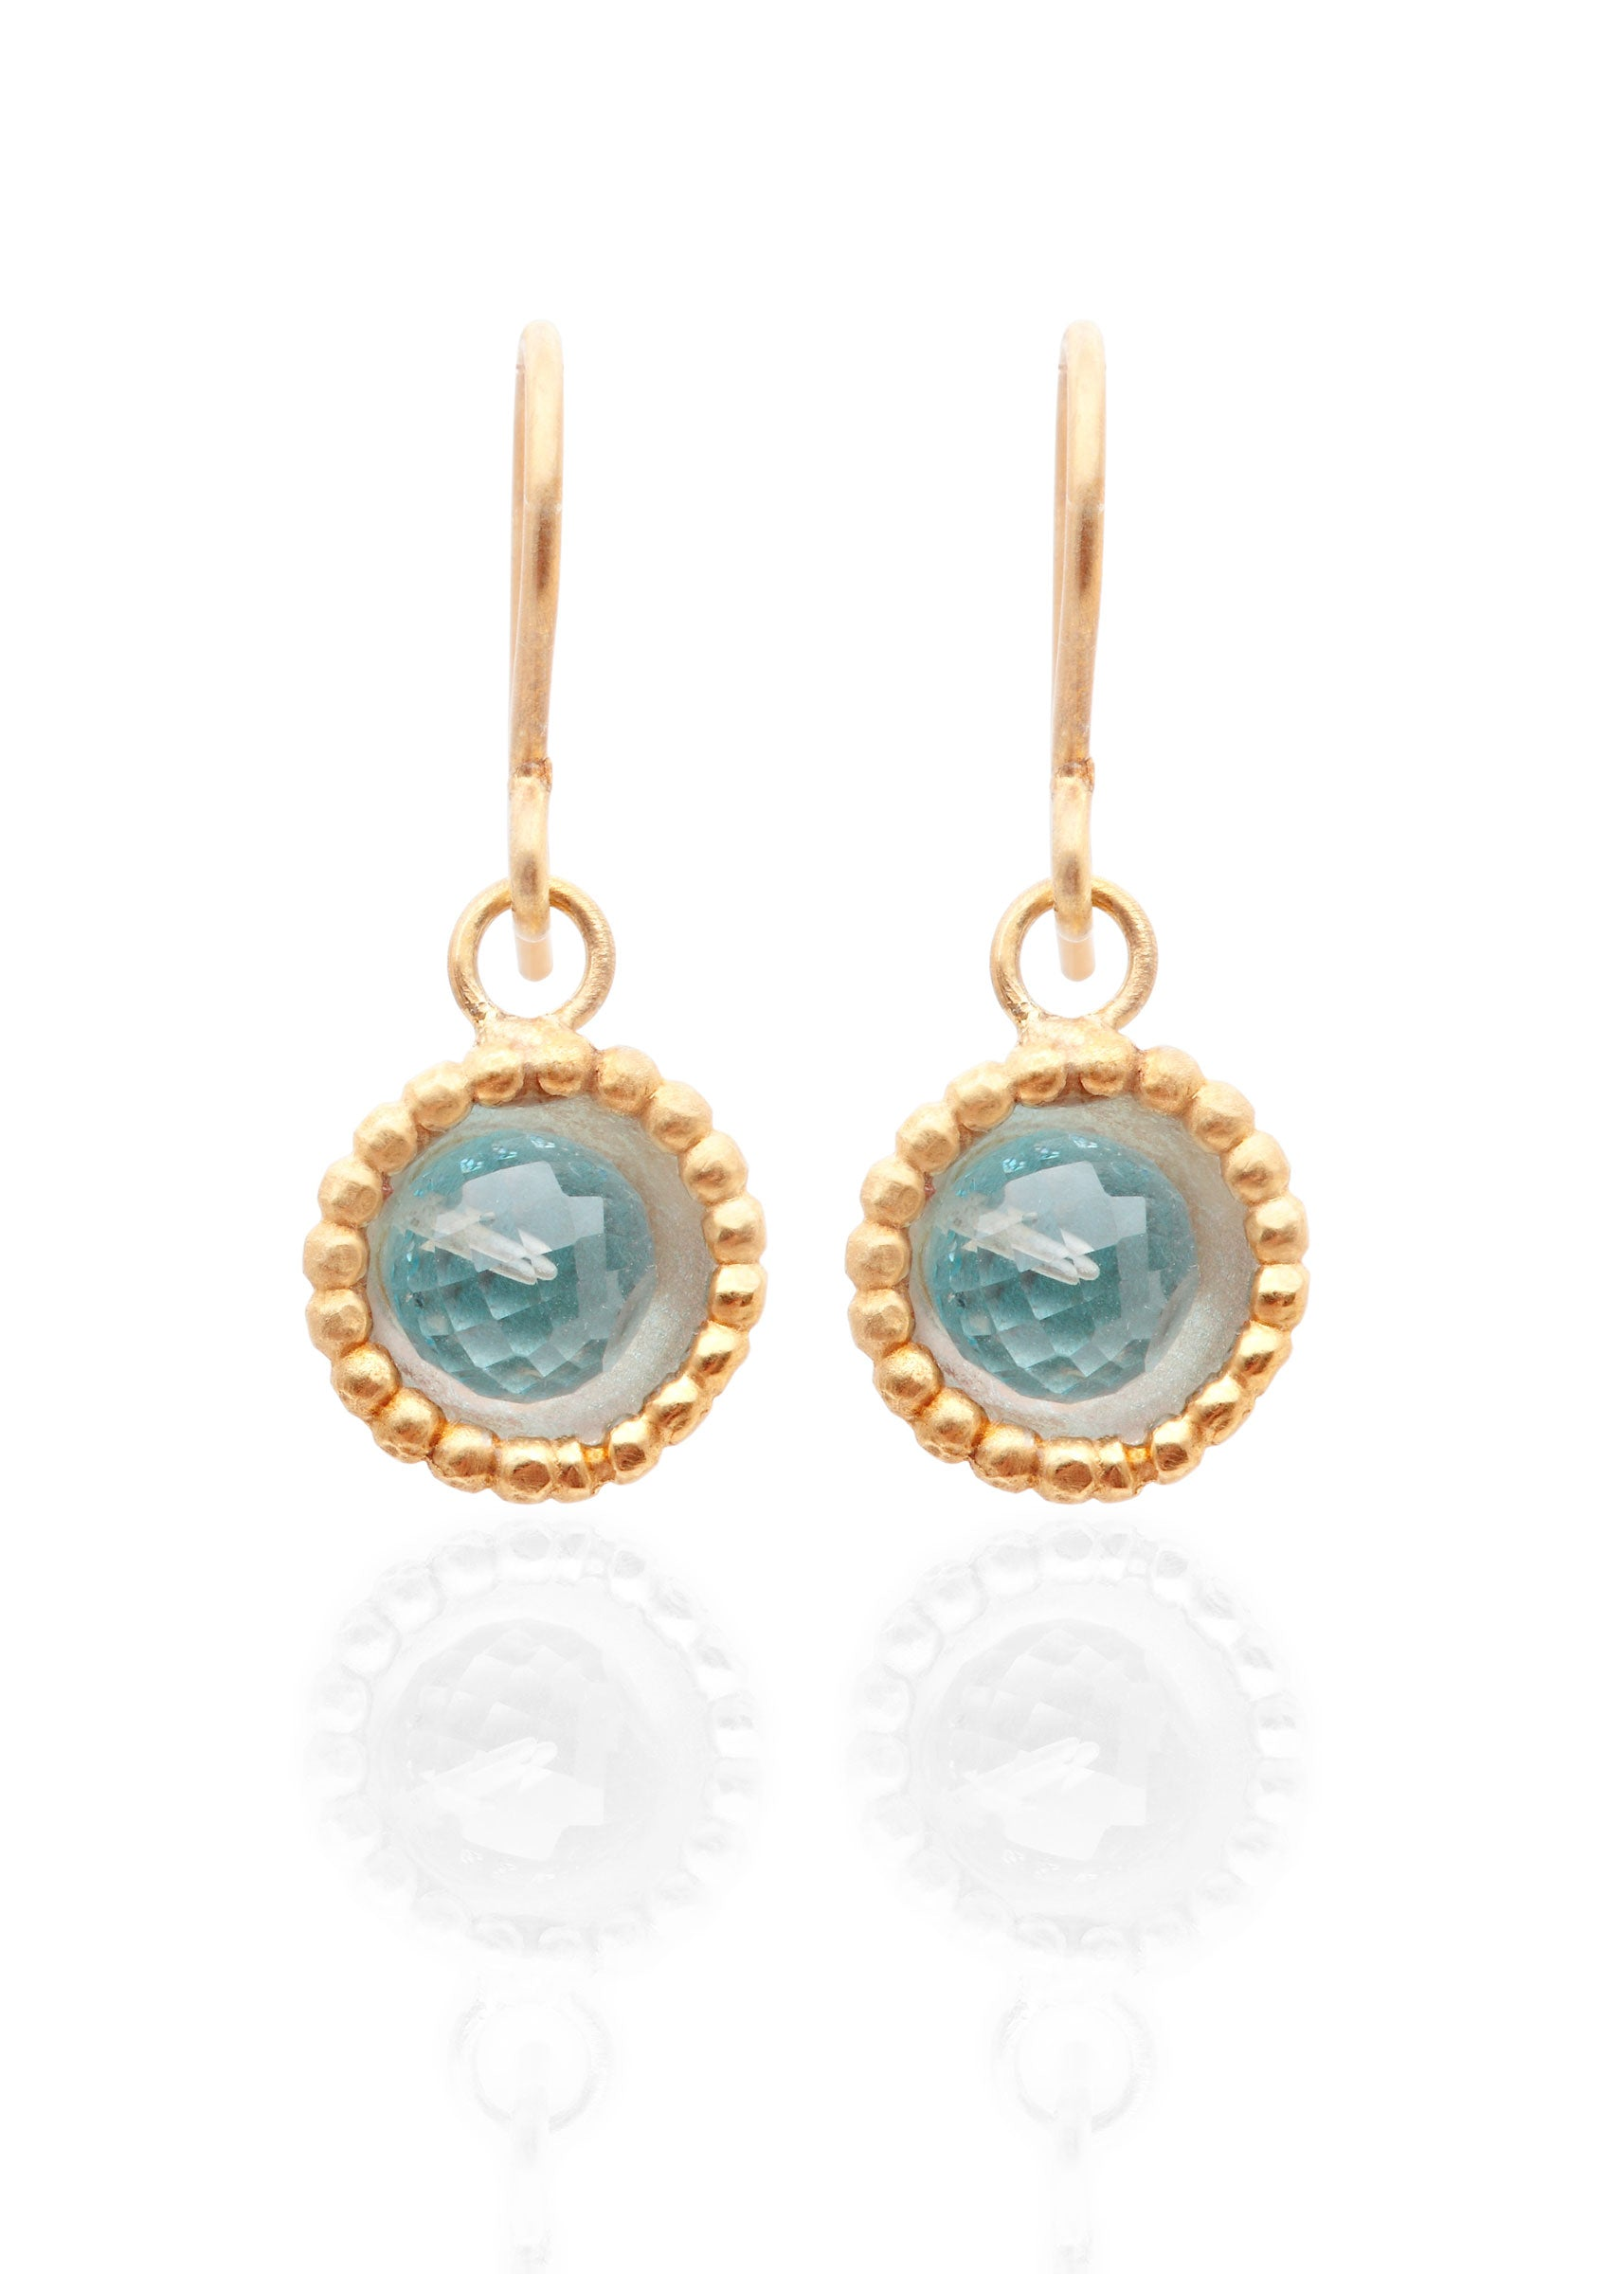 Byzantine dome blue topaz earrings